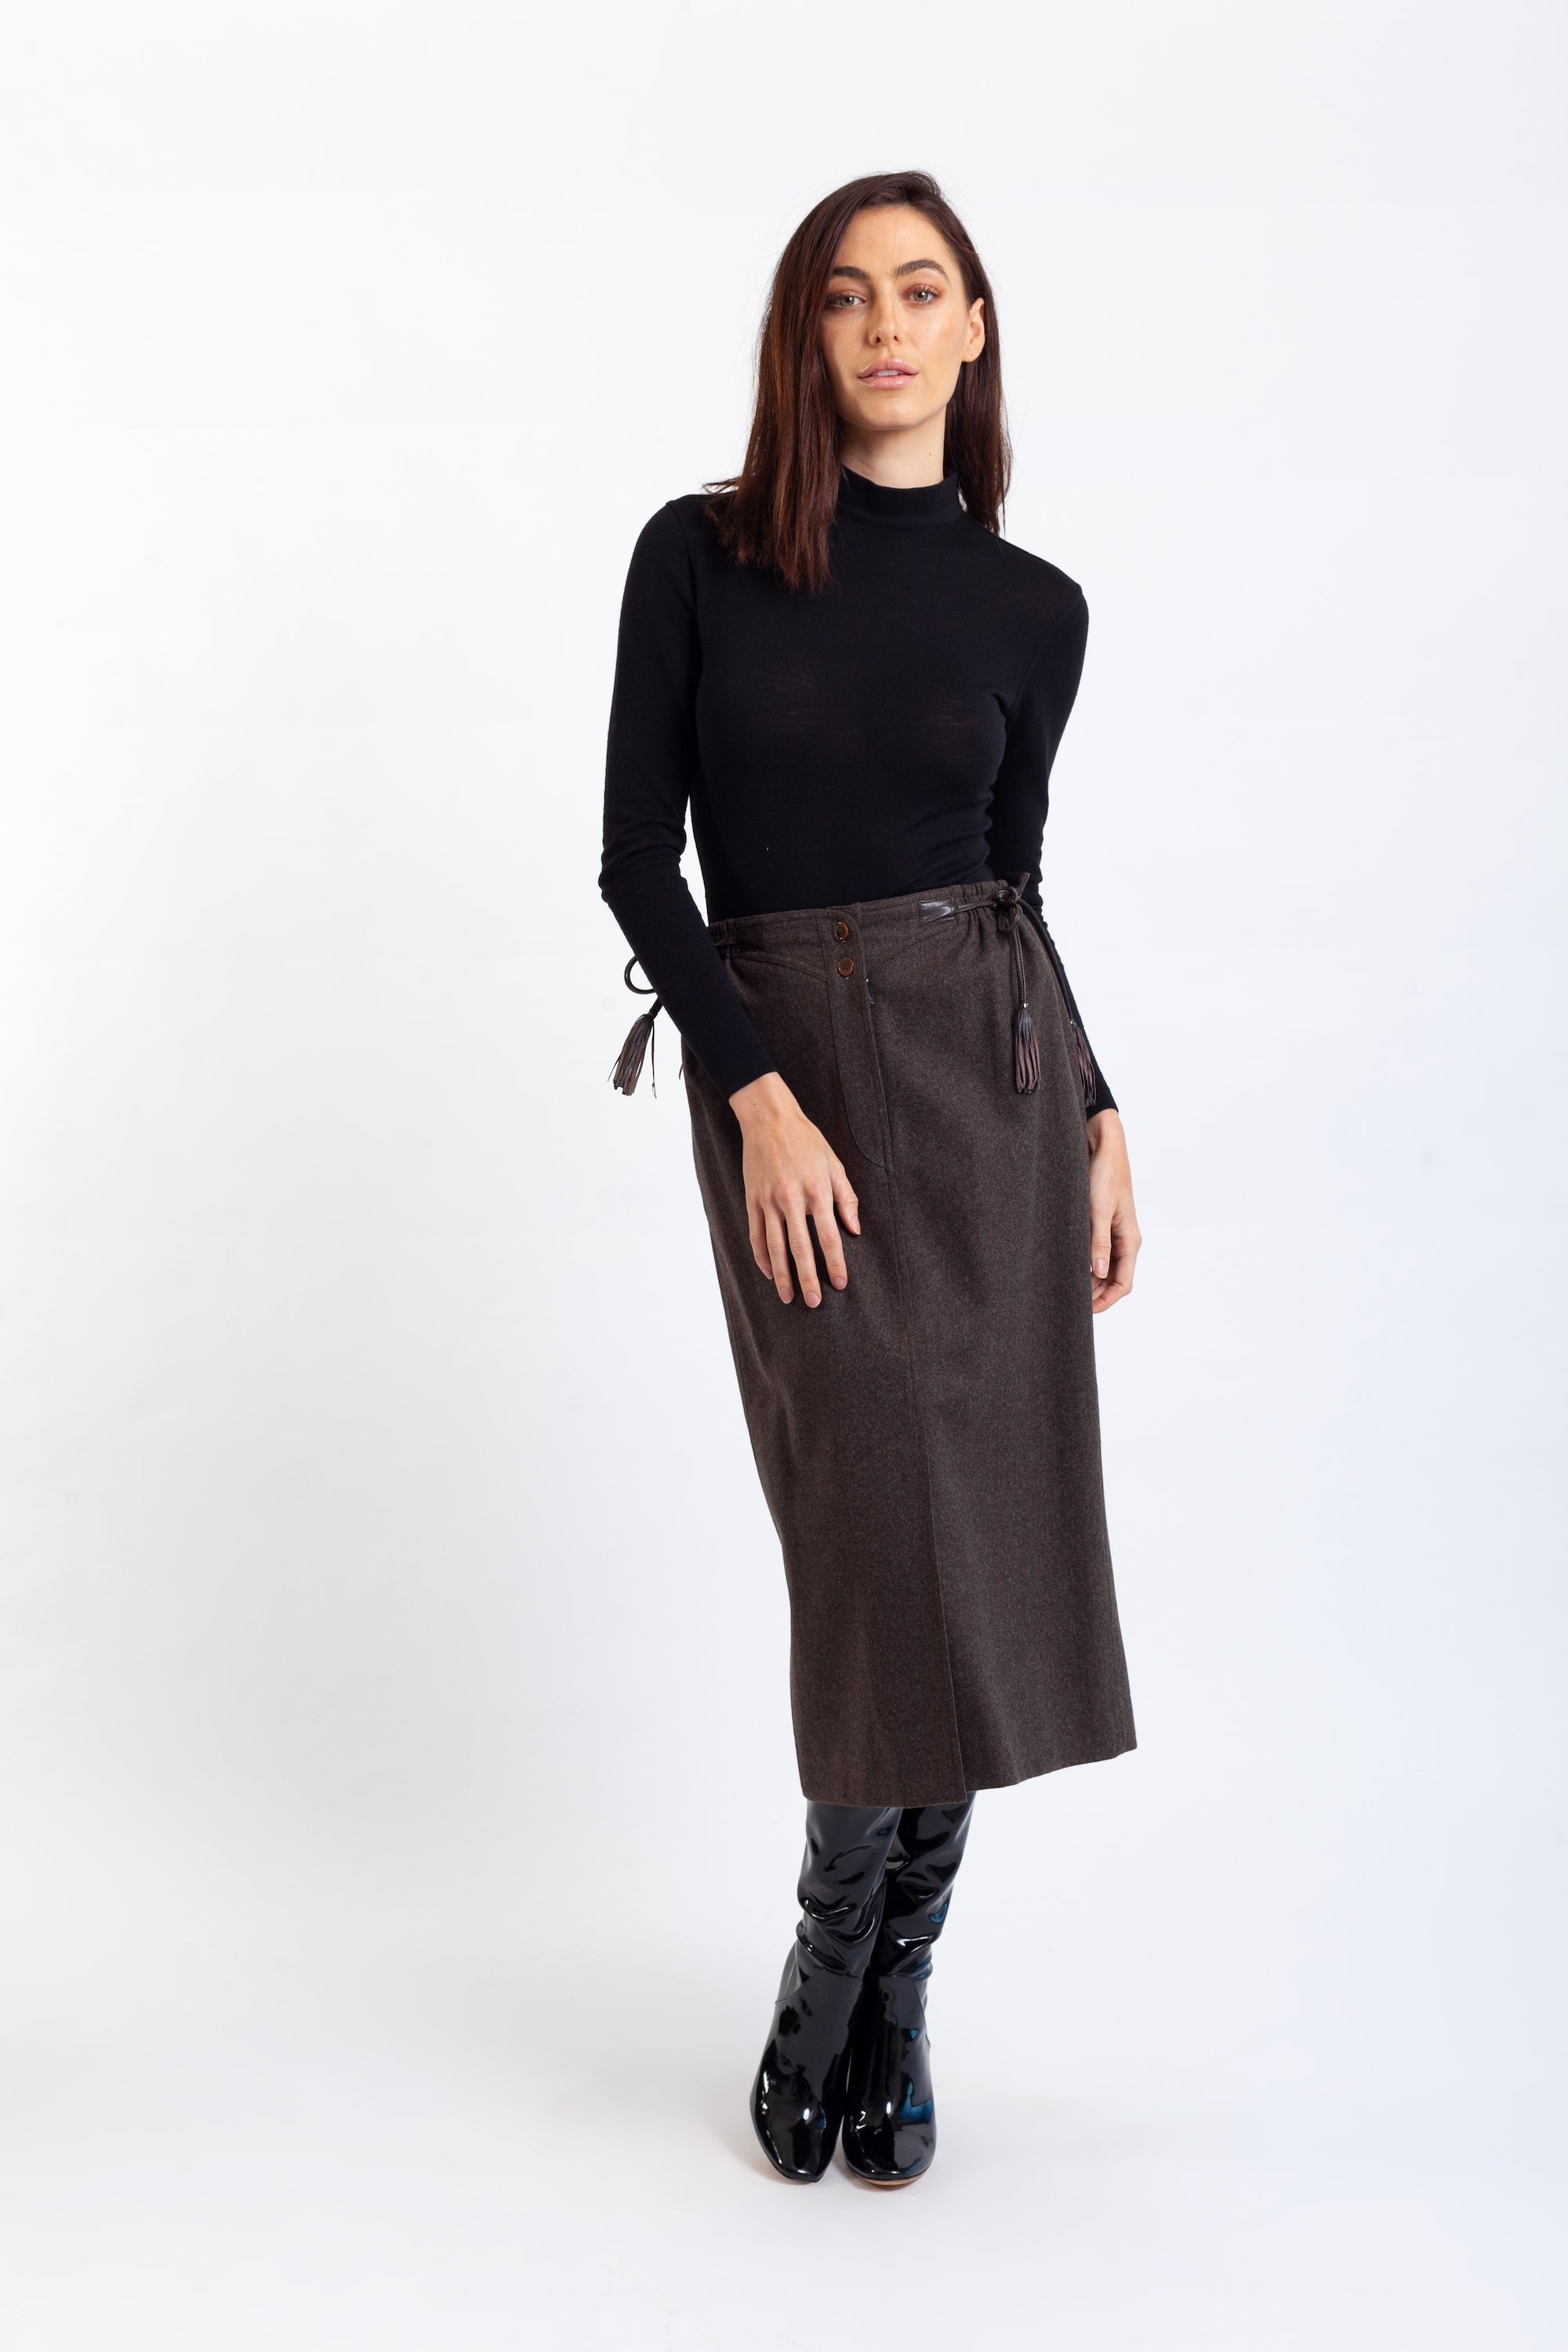 Gucci <br> 70's wool skirt with leather logo tassels